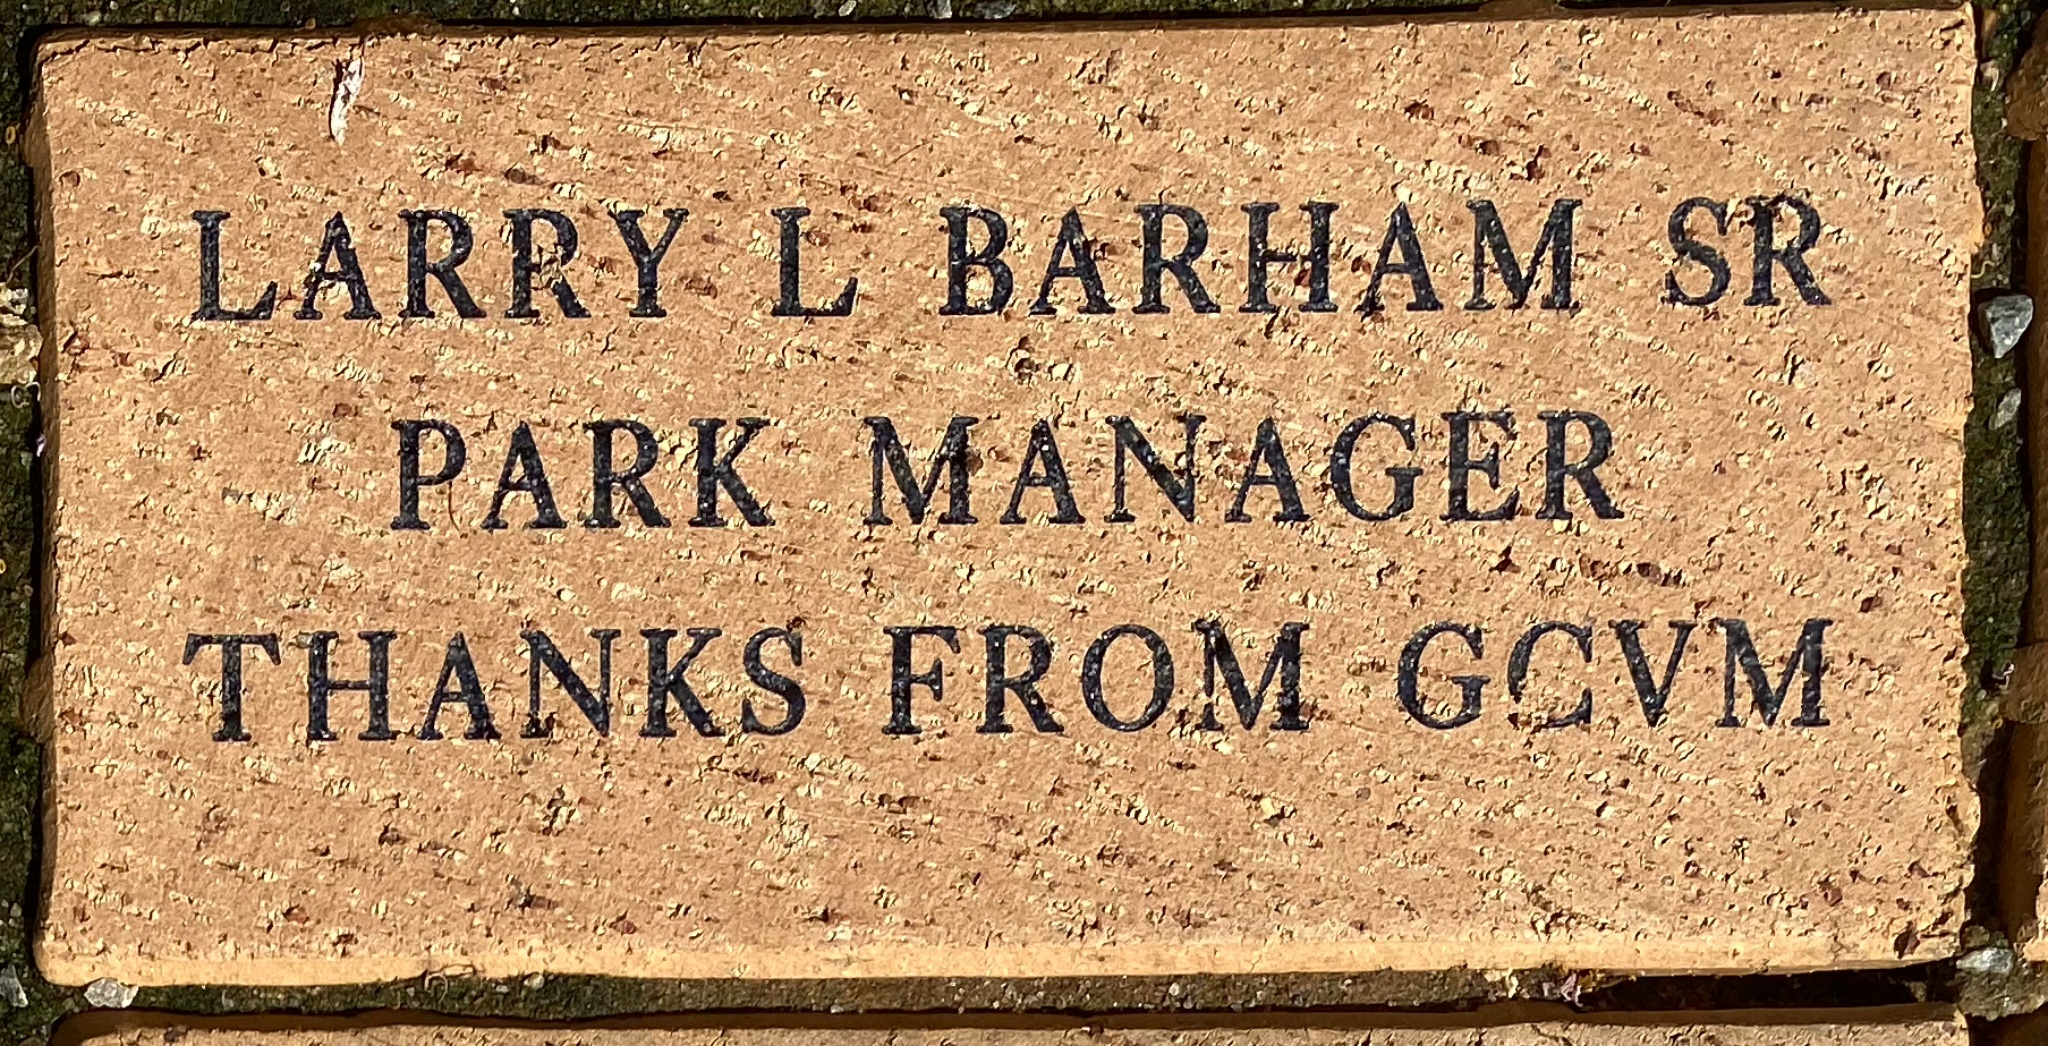 LARRY L BARHAM SR PARK MANAGER THANKS FROM GCVM